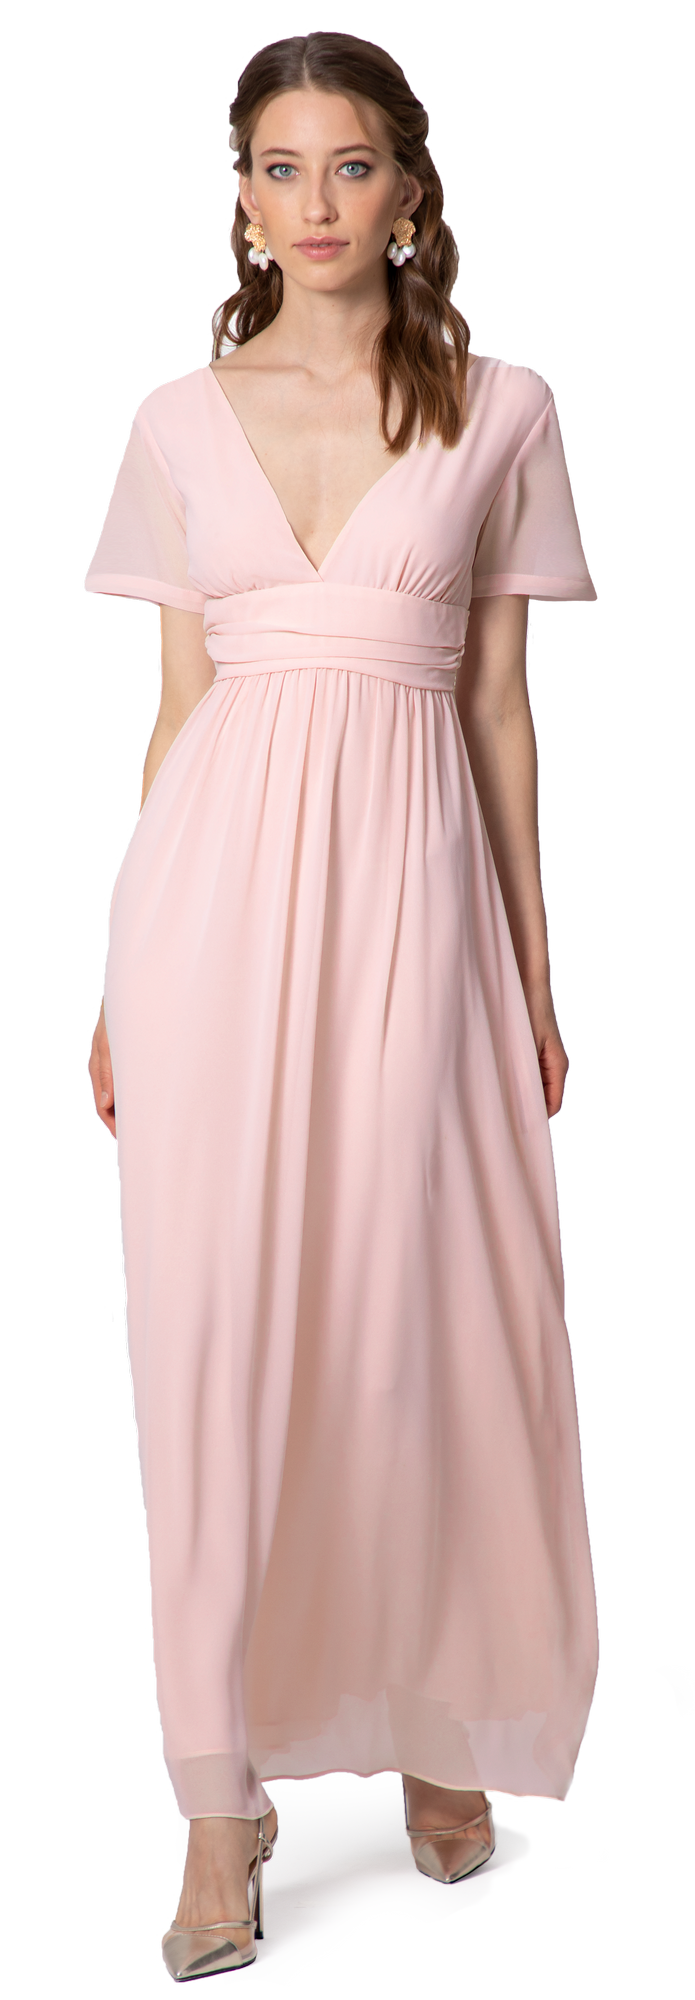 bridesmaid dress in chiffon